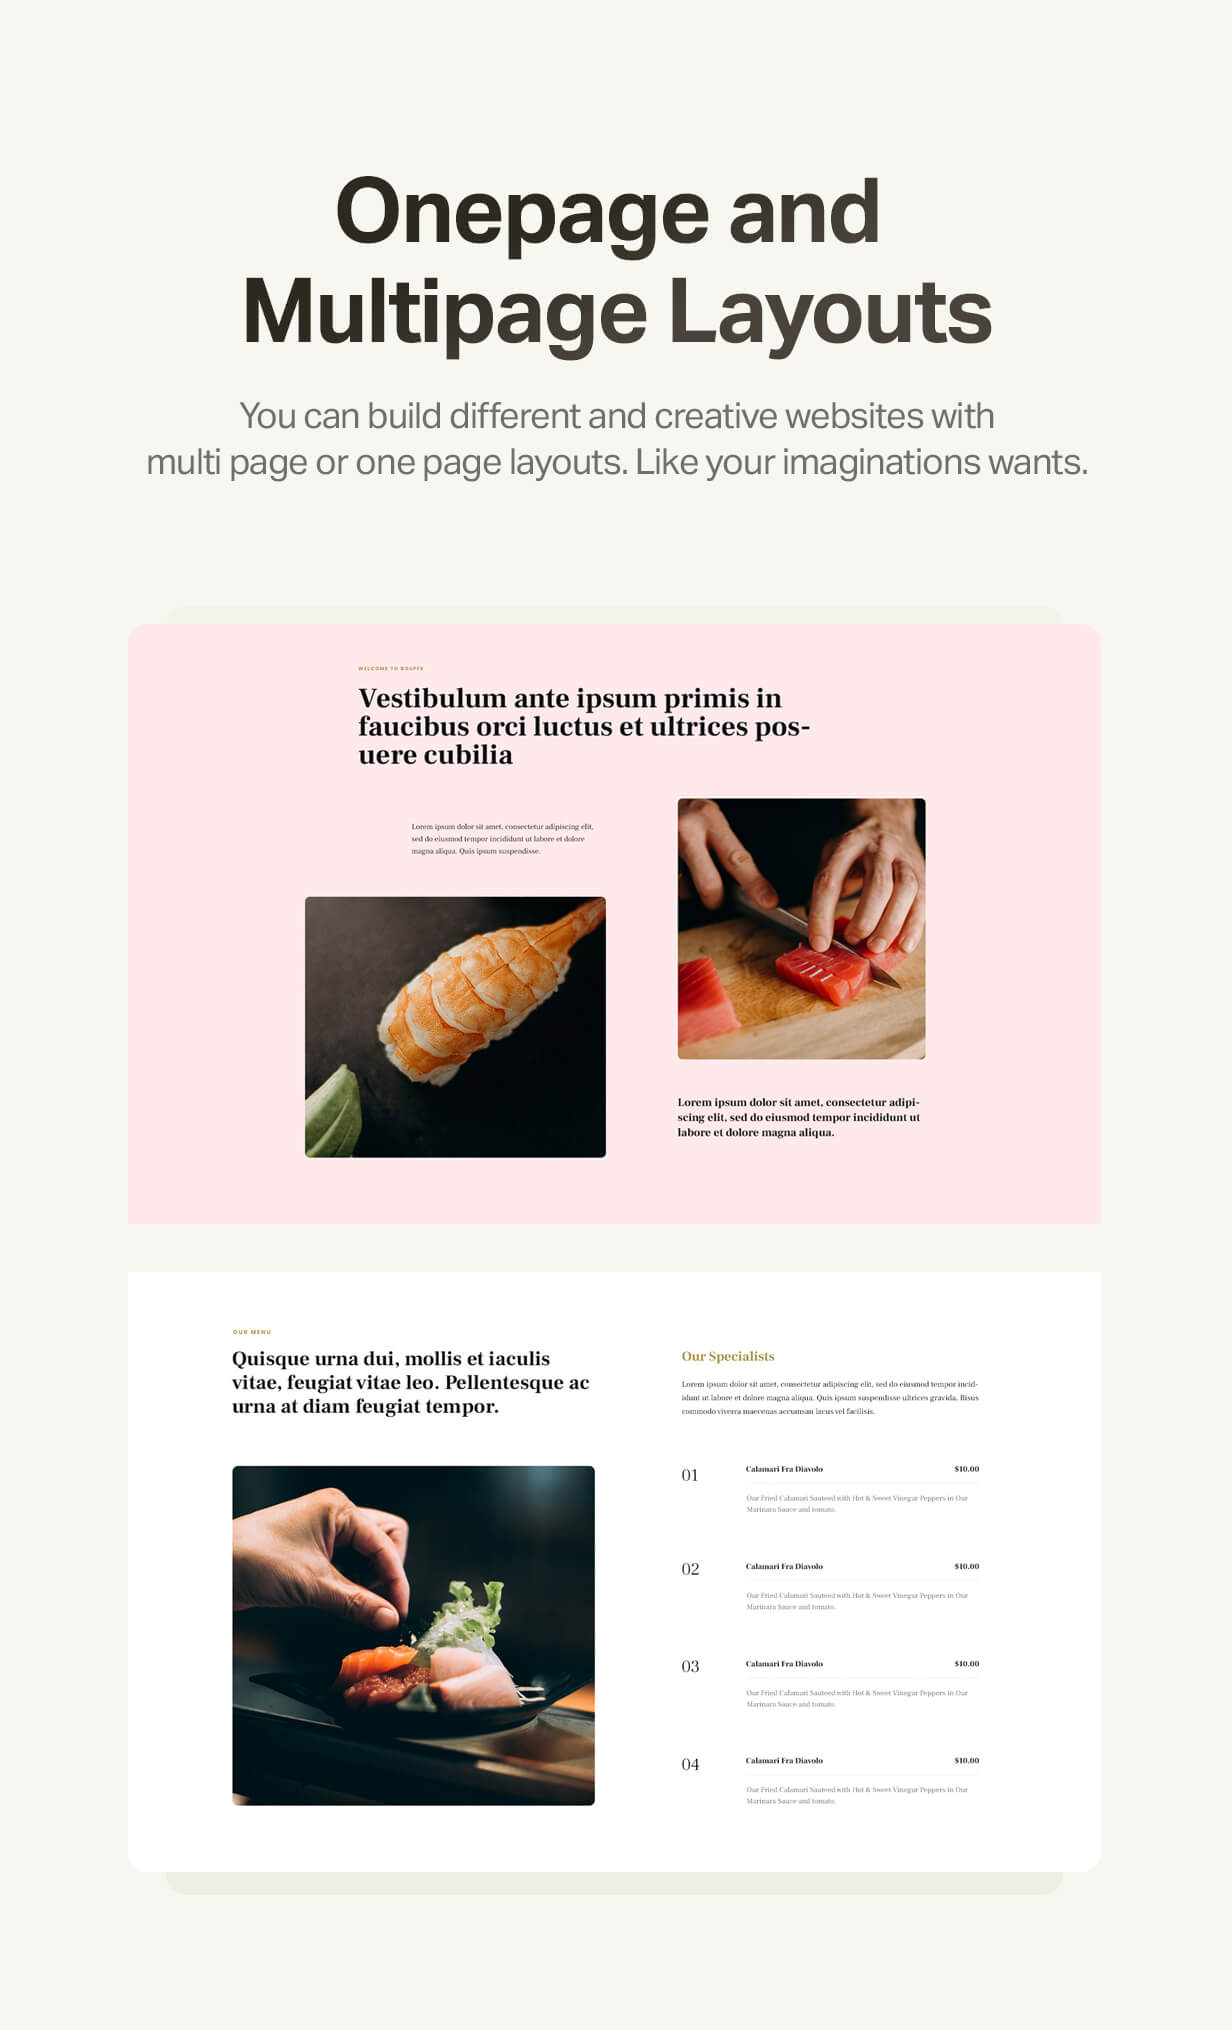 Onepage and multipage